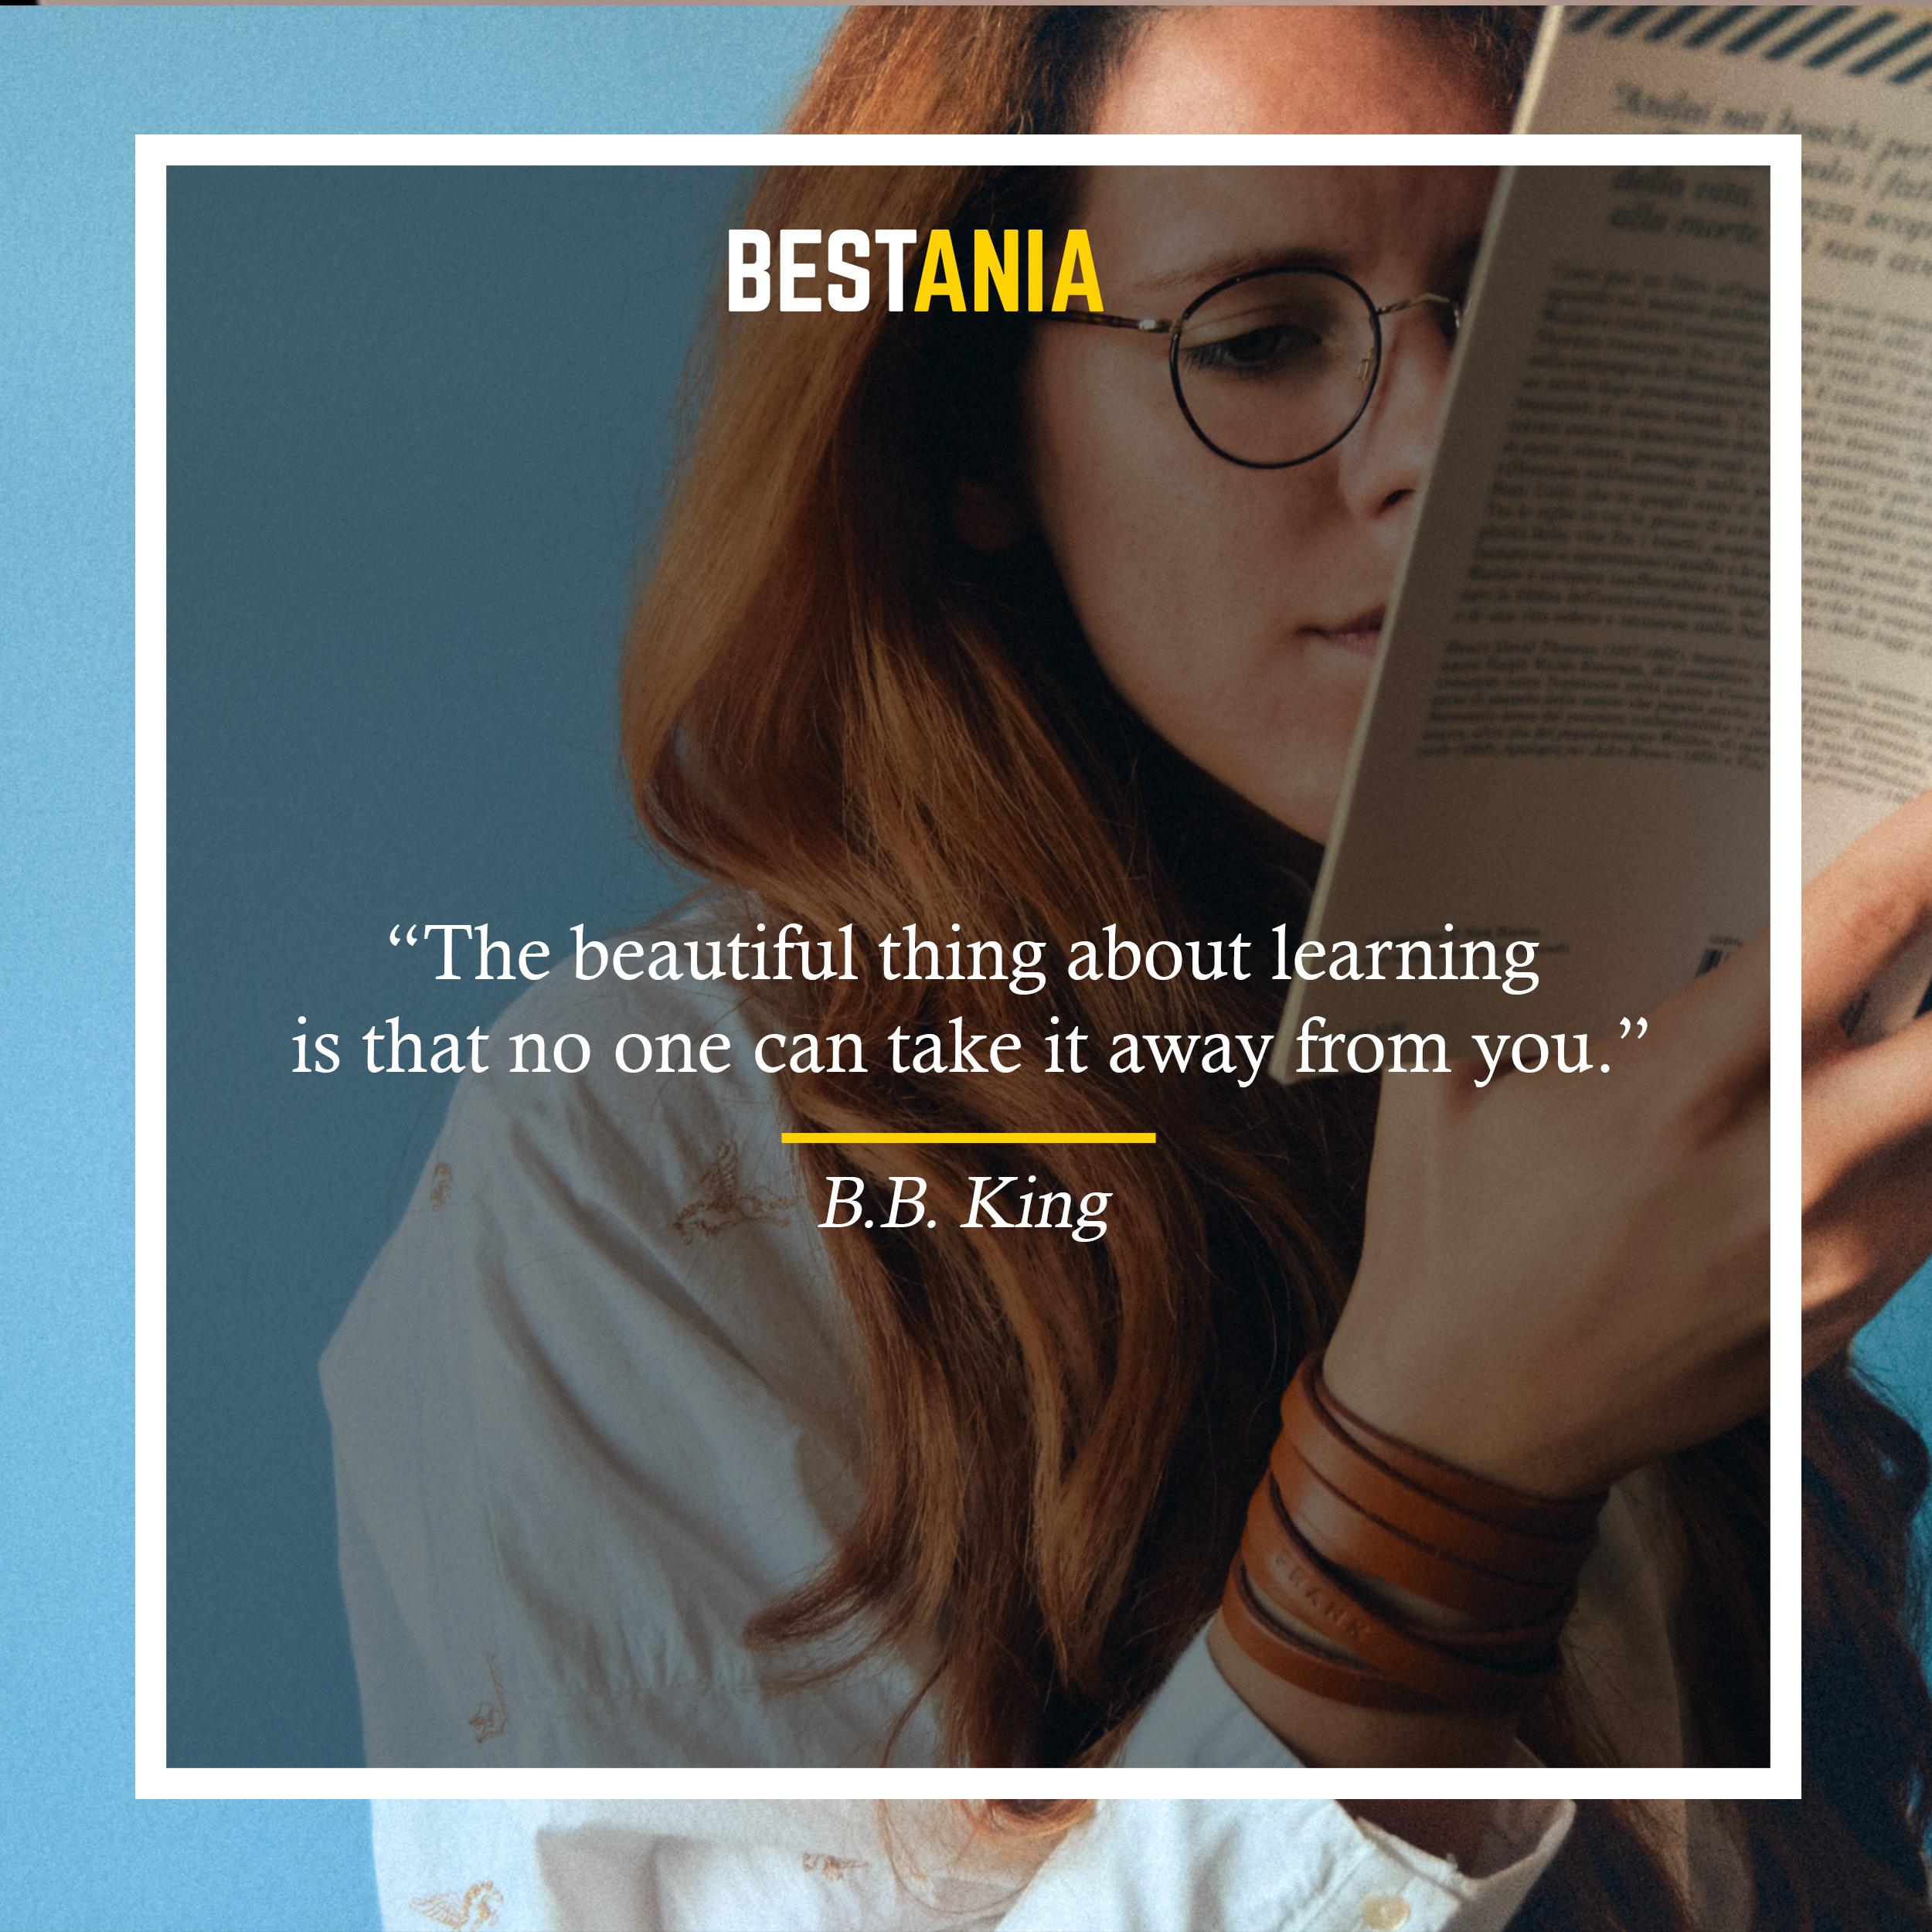 """The beautiful thing about learning is that no one can take it away from you."" —B.B. King"